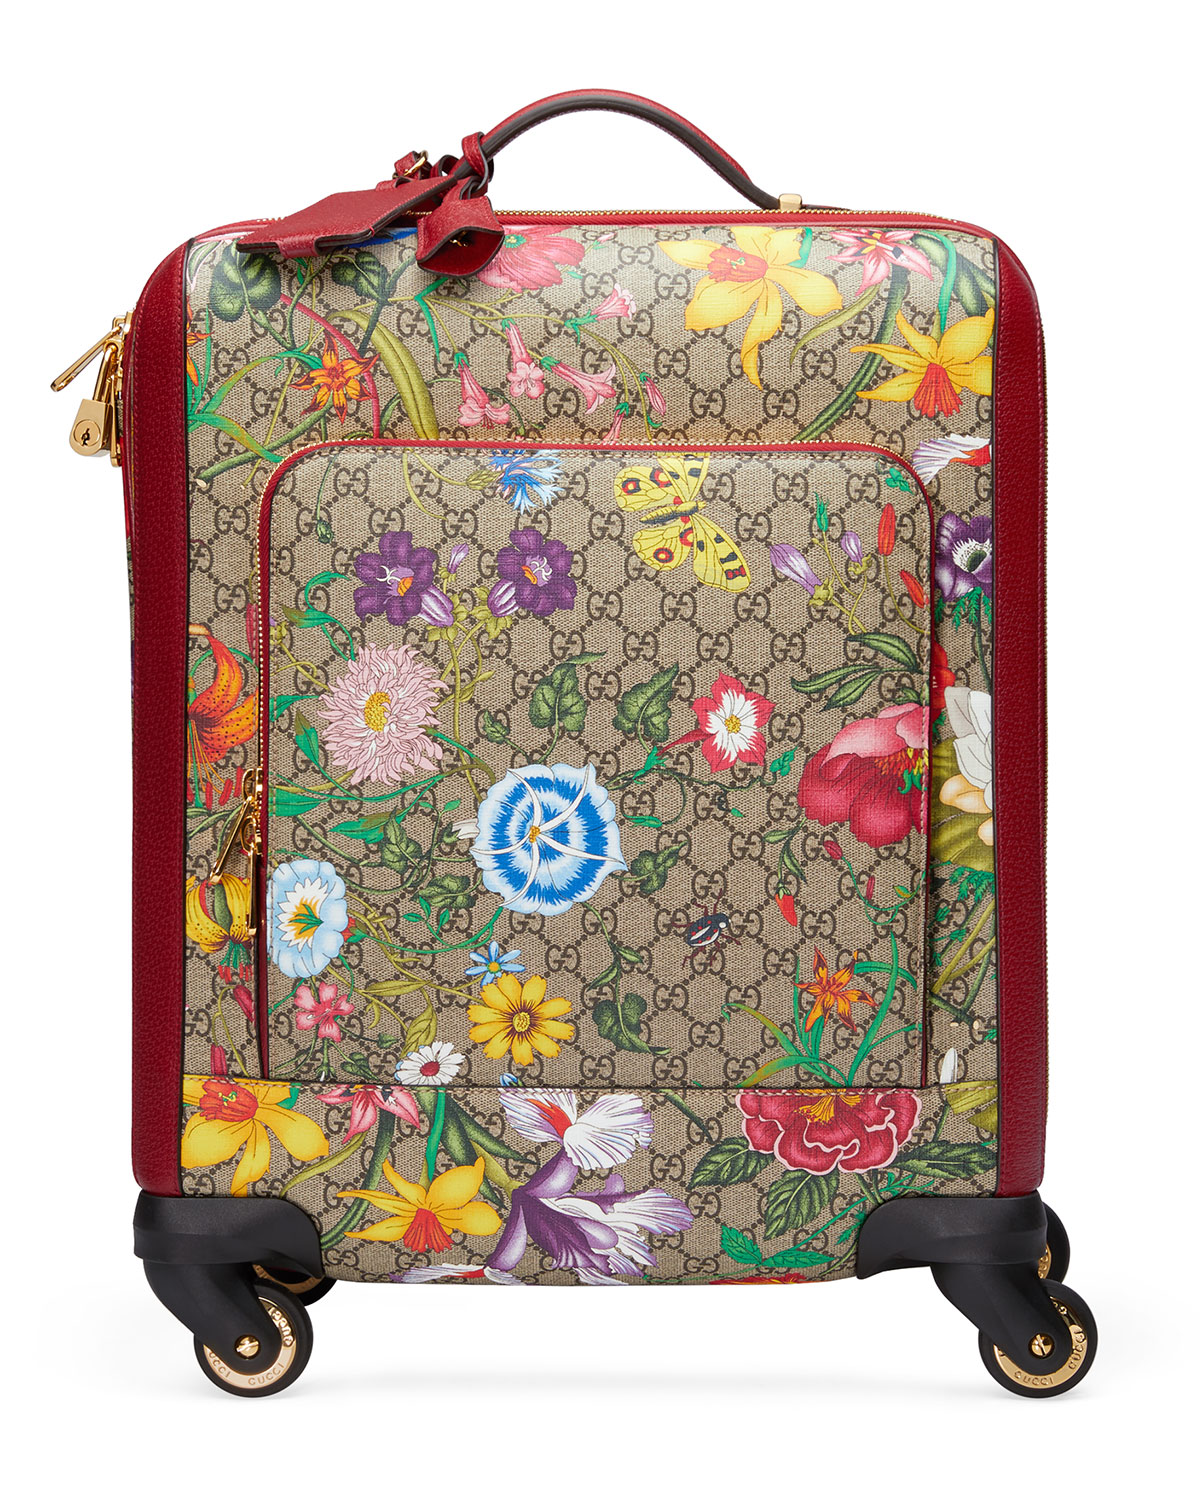 Gucci Bags GG SUPREME FLORA CARRY-ON TROLLEY SUITCASE LUGGAGE